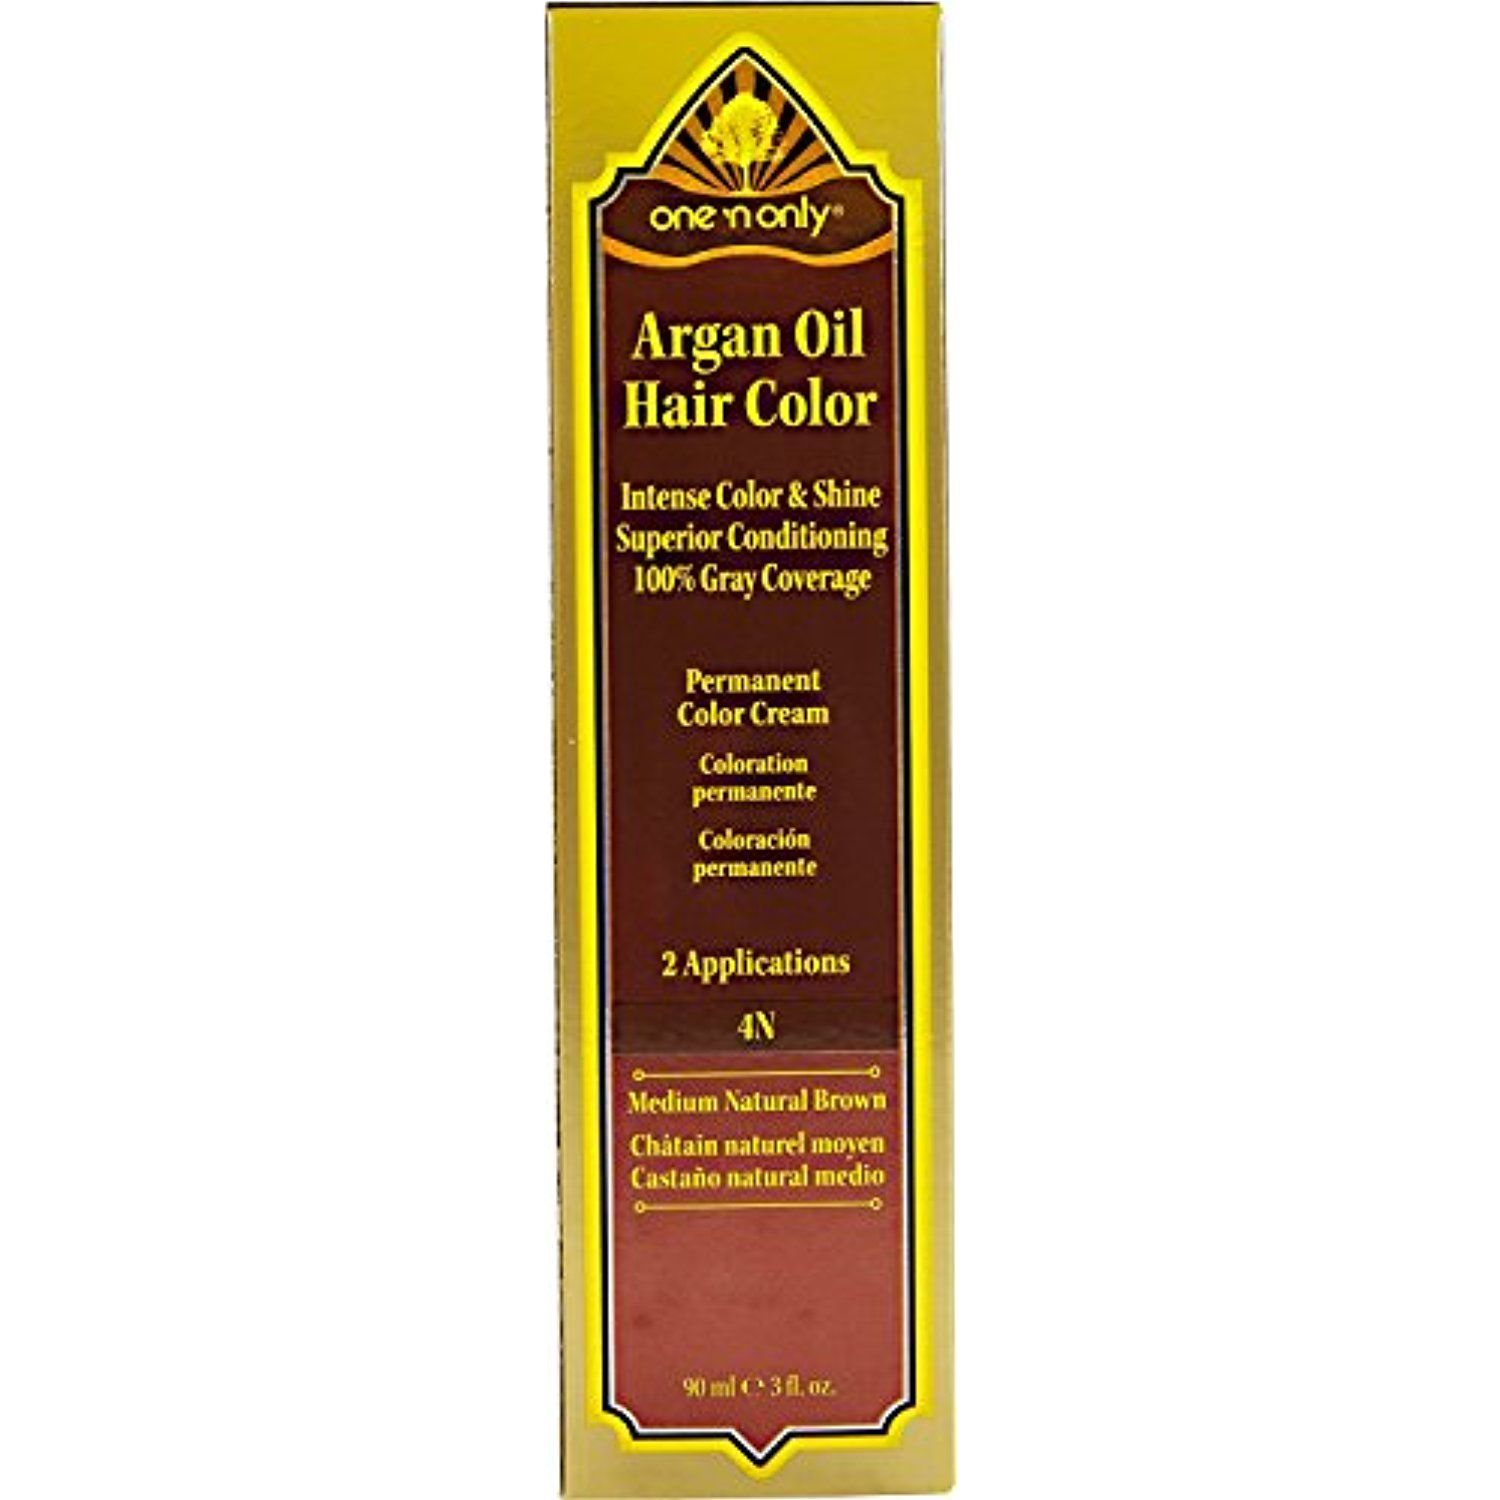 One N Only Argan Oil Hair Color 4n Medium Natural Brown Click